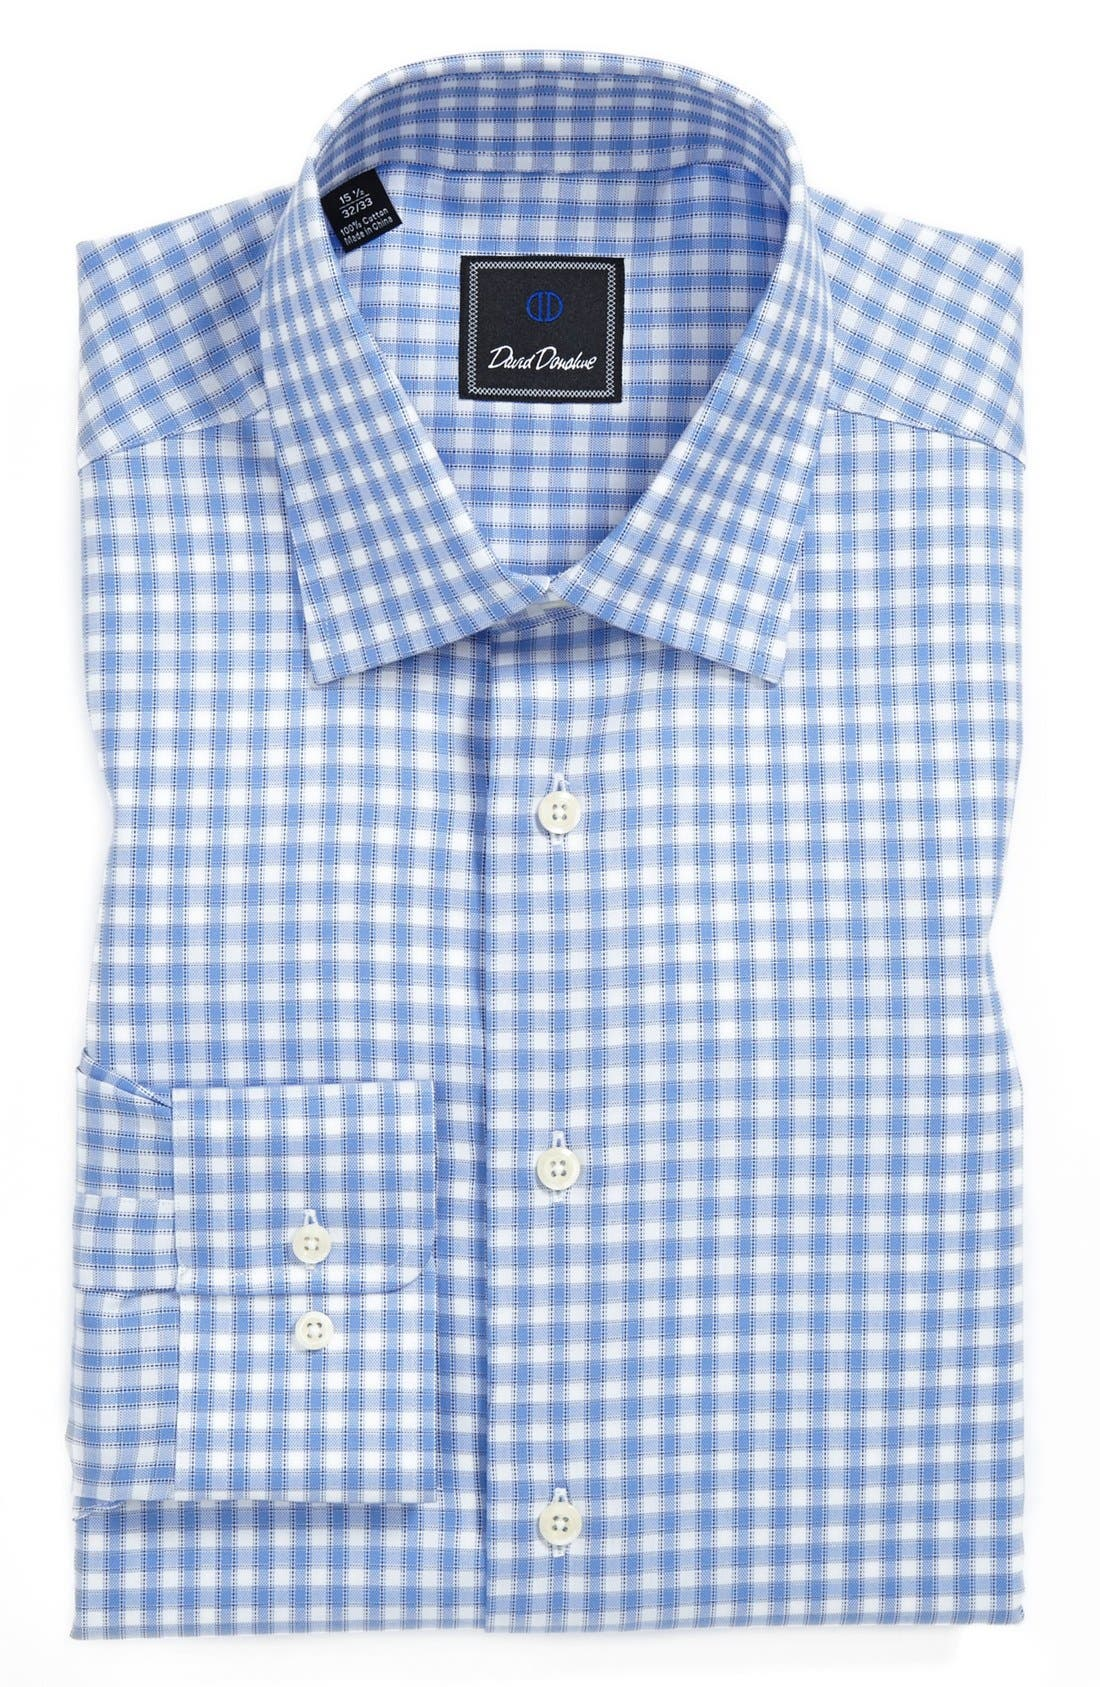 Alternate Image 1 Selected - David Donahue Regular Fit Dress Shirt